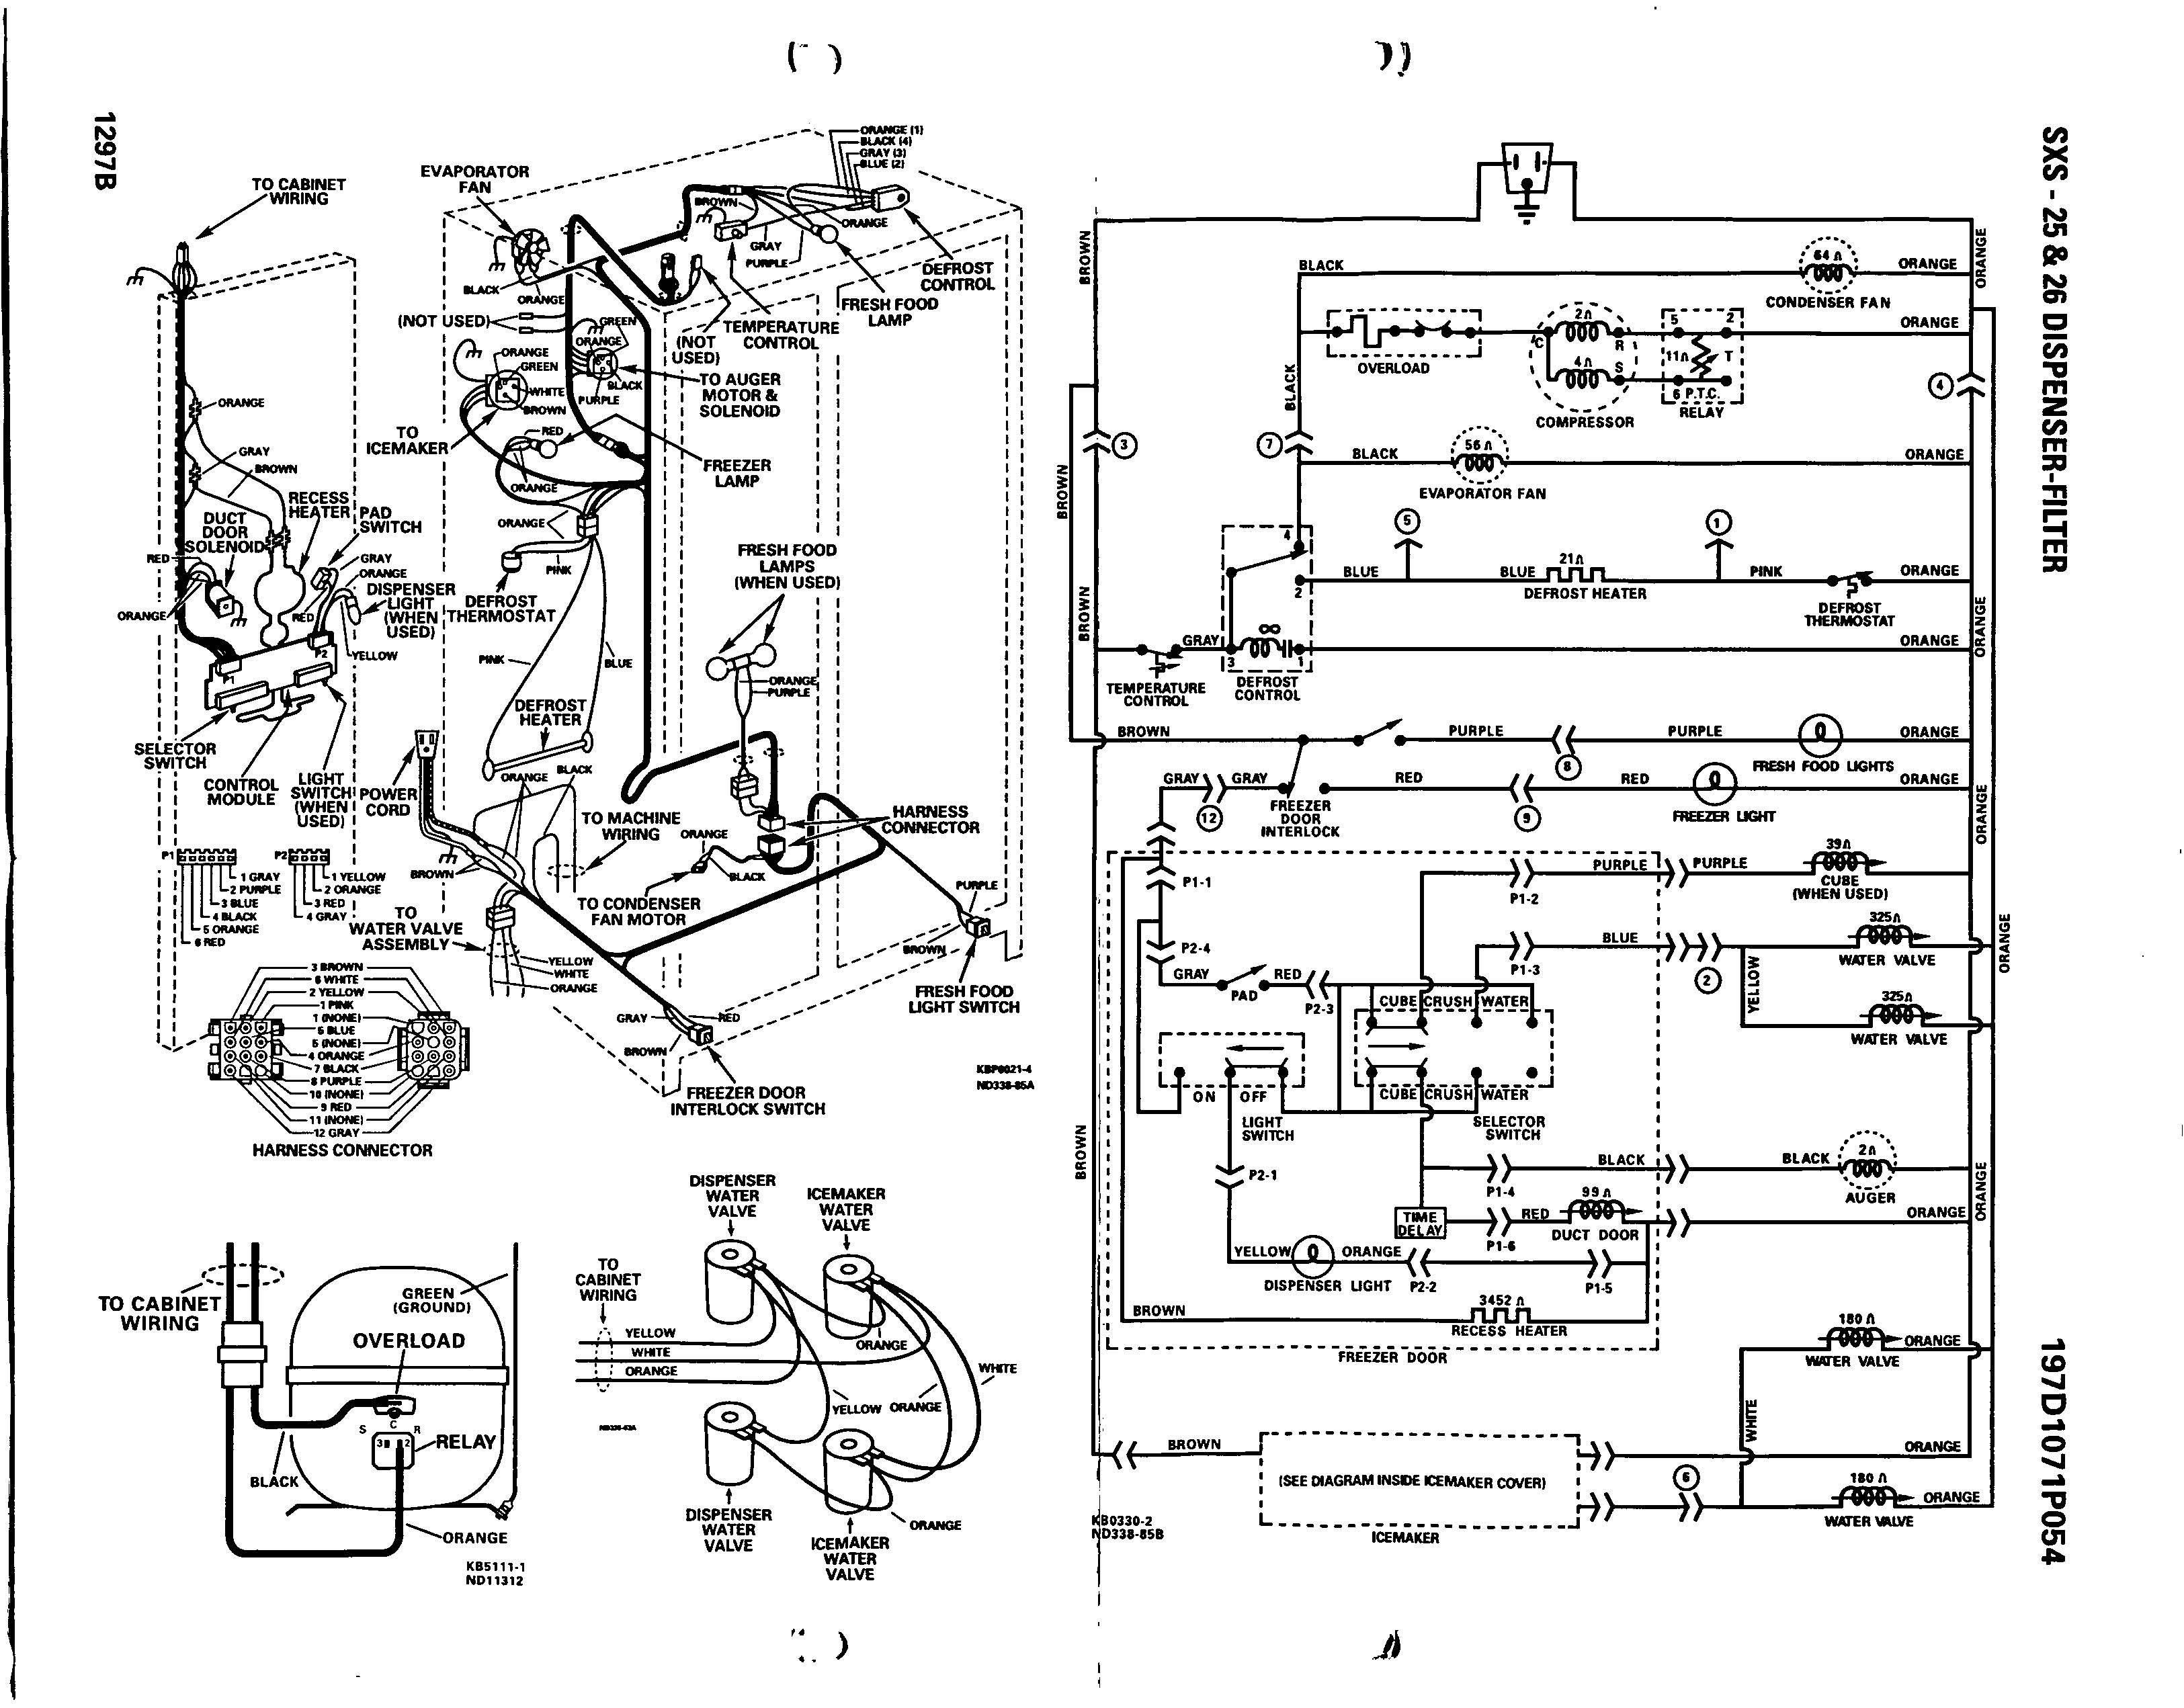 Pin By Trevor Boardman On Diy Automatic Washing Machine Electrical Wiring Diagram Thermostat Wiring